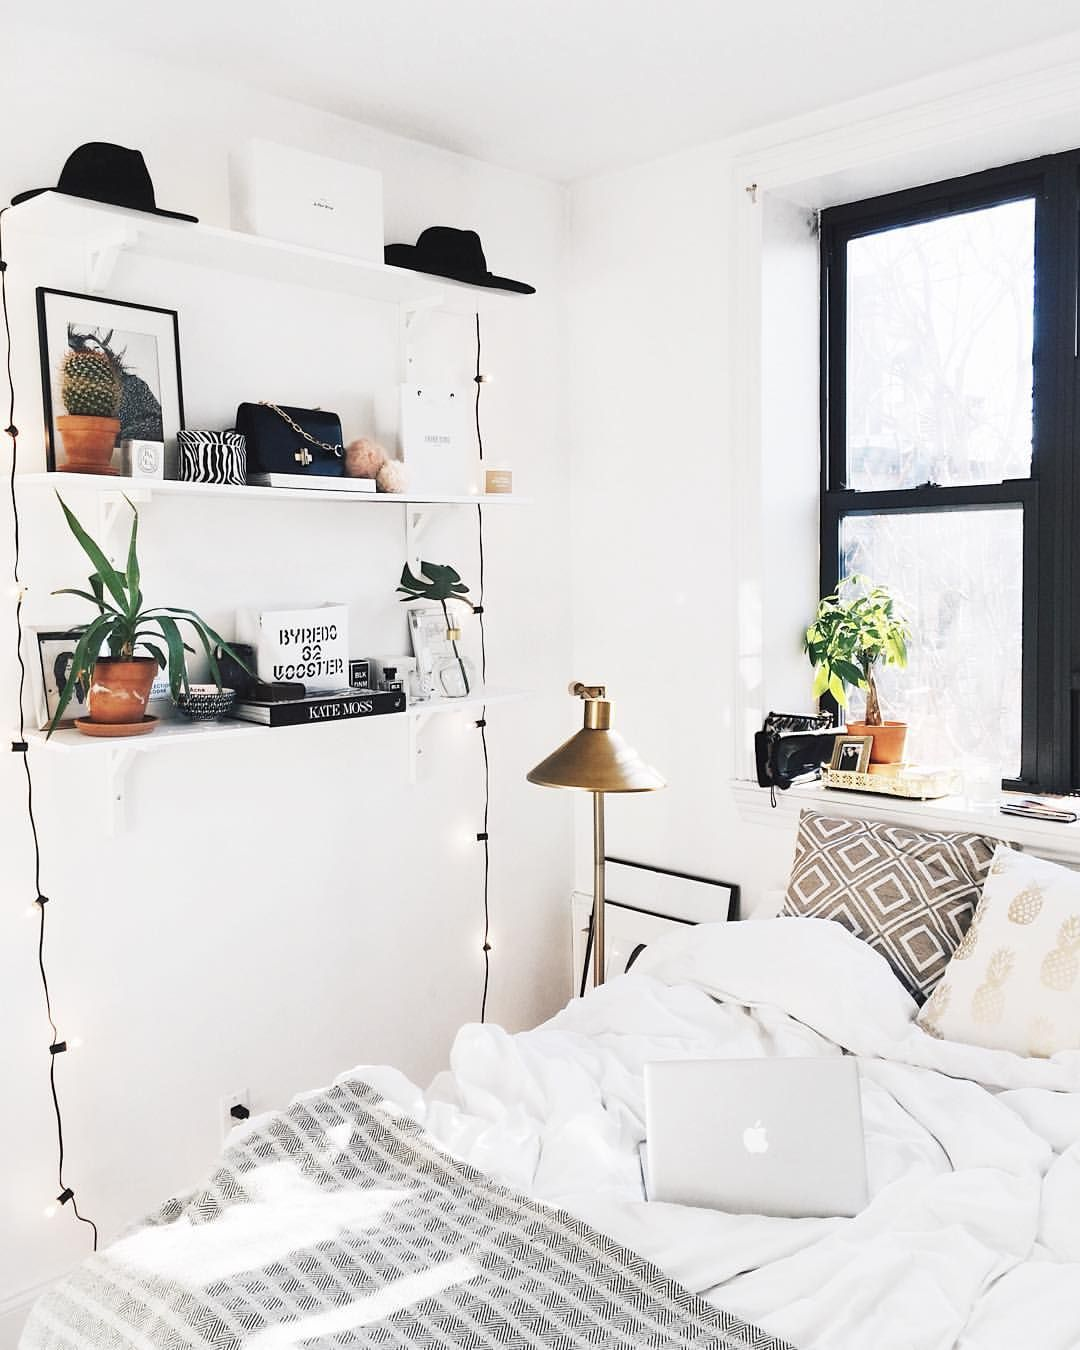 "Deco Bedroom Minimalist Interior viktoria dahlberg på instagram: ""weekend vibes ✨✨✨ #goodmorning"